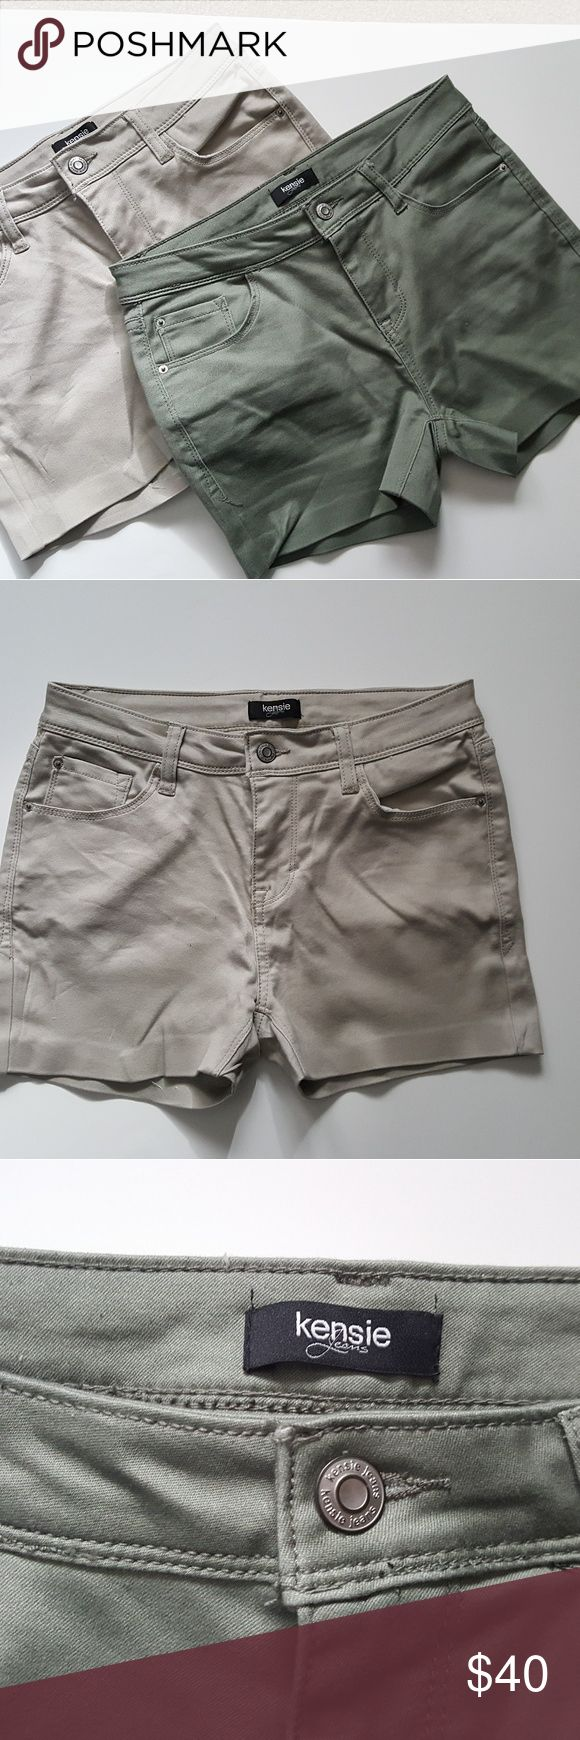 BUNDLE Kensie Jeans Shorts Beige Olive Green Please note that these were both originally pants, and I cut them and used hemming tape to hem the shorts (as shown in pics).   In excellent condition!   One price for both shorts!  Size is 4/27 Kensie Shorts